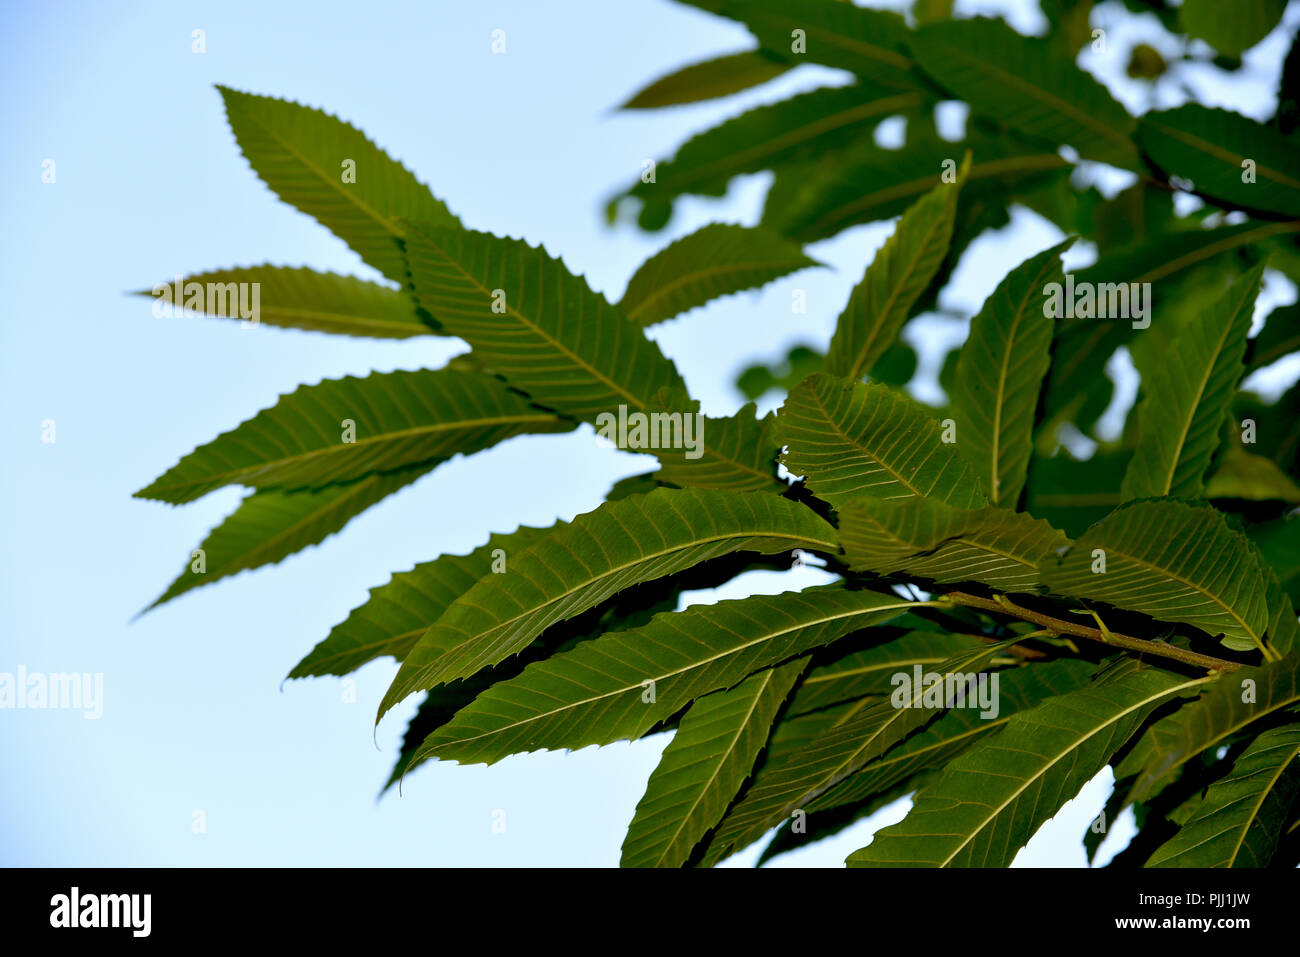 Plant With Jagged Leaves Stock Photos & Plant With Jagged ... on plants with notched leaves, plants with narrow leaves, plants with corrugated leaves, trees with doubly serrate leaves, milkweed plant leaves, plants with clusters of, plants with long spiky leaves, plants with alternate leaves, plants with scalloped leaves, plants with triangle leaves, houseplants identify by leaves, plants with dark green, plants with razor leaves, plants with oblong leaves, large weed with heart shaped leaves, plants with pink heart shaped leaves, plants with leaves simple, plants with toothed leaves, plants with smooth leaves, plants with opposite leaves,